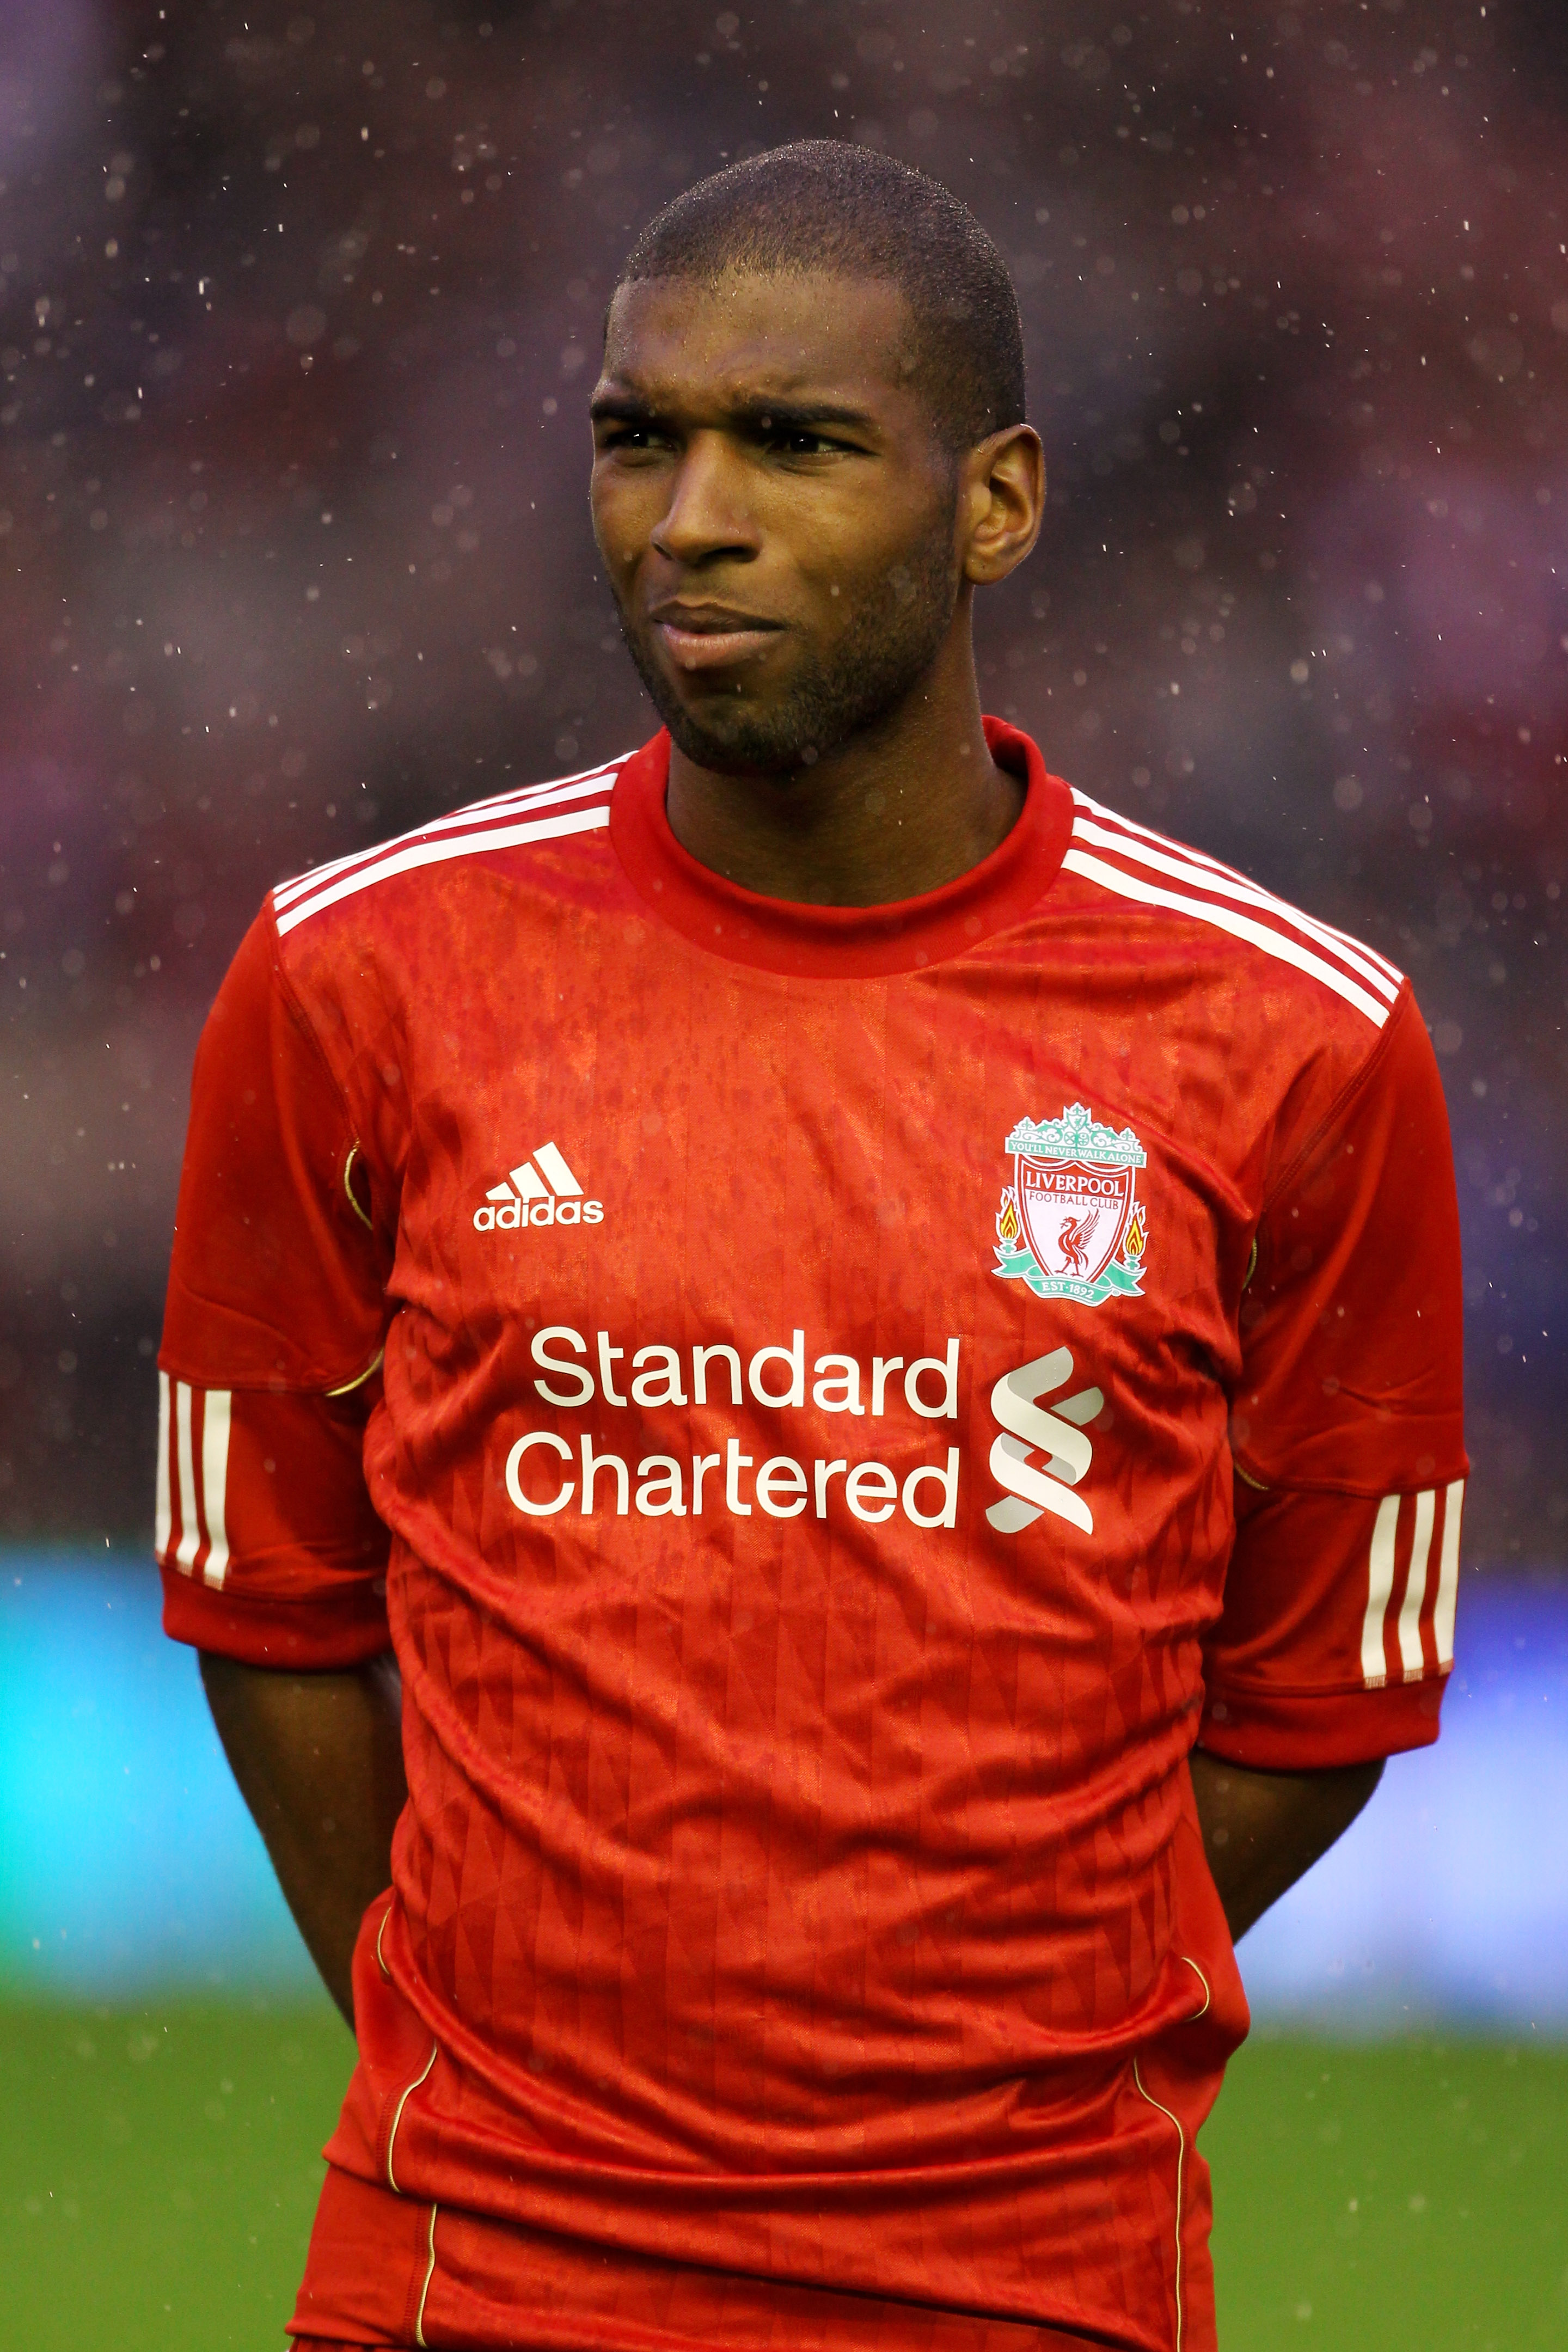 LIVERPOOL, ENGLAND - AUGUST 19:  Ryan Babel of Liverpool looks on prior to the UEFA Europa League play-off first leg match beteween Liverpool and Trabzonspor at Anfield on August 19, 2010 in Liverpool, England.  (Photo by Alex Livesey/Getty Images)